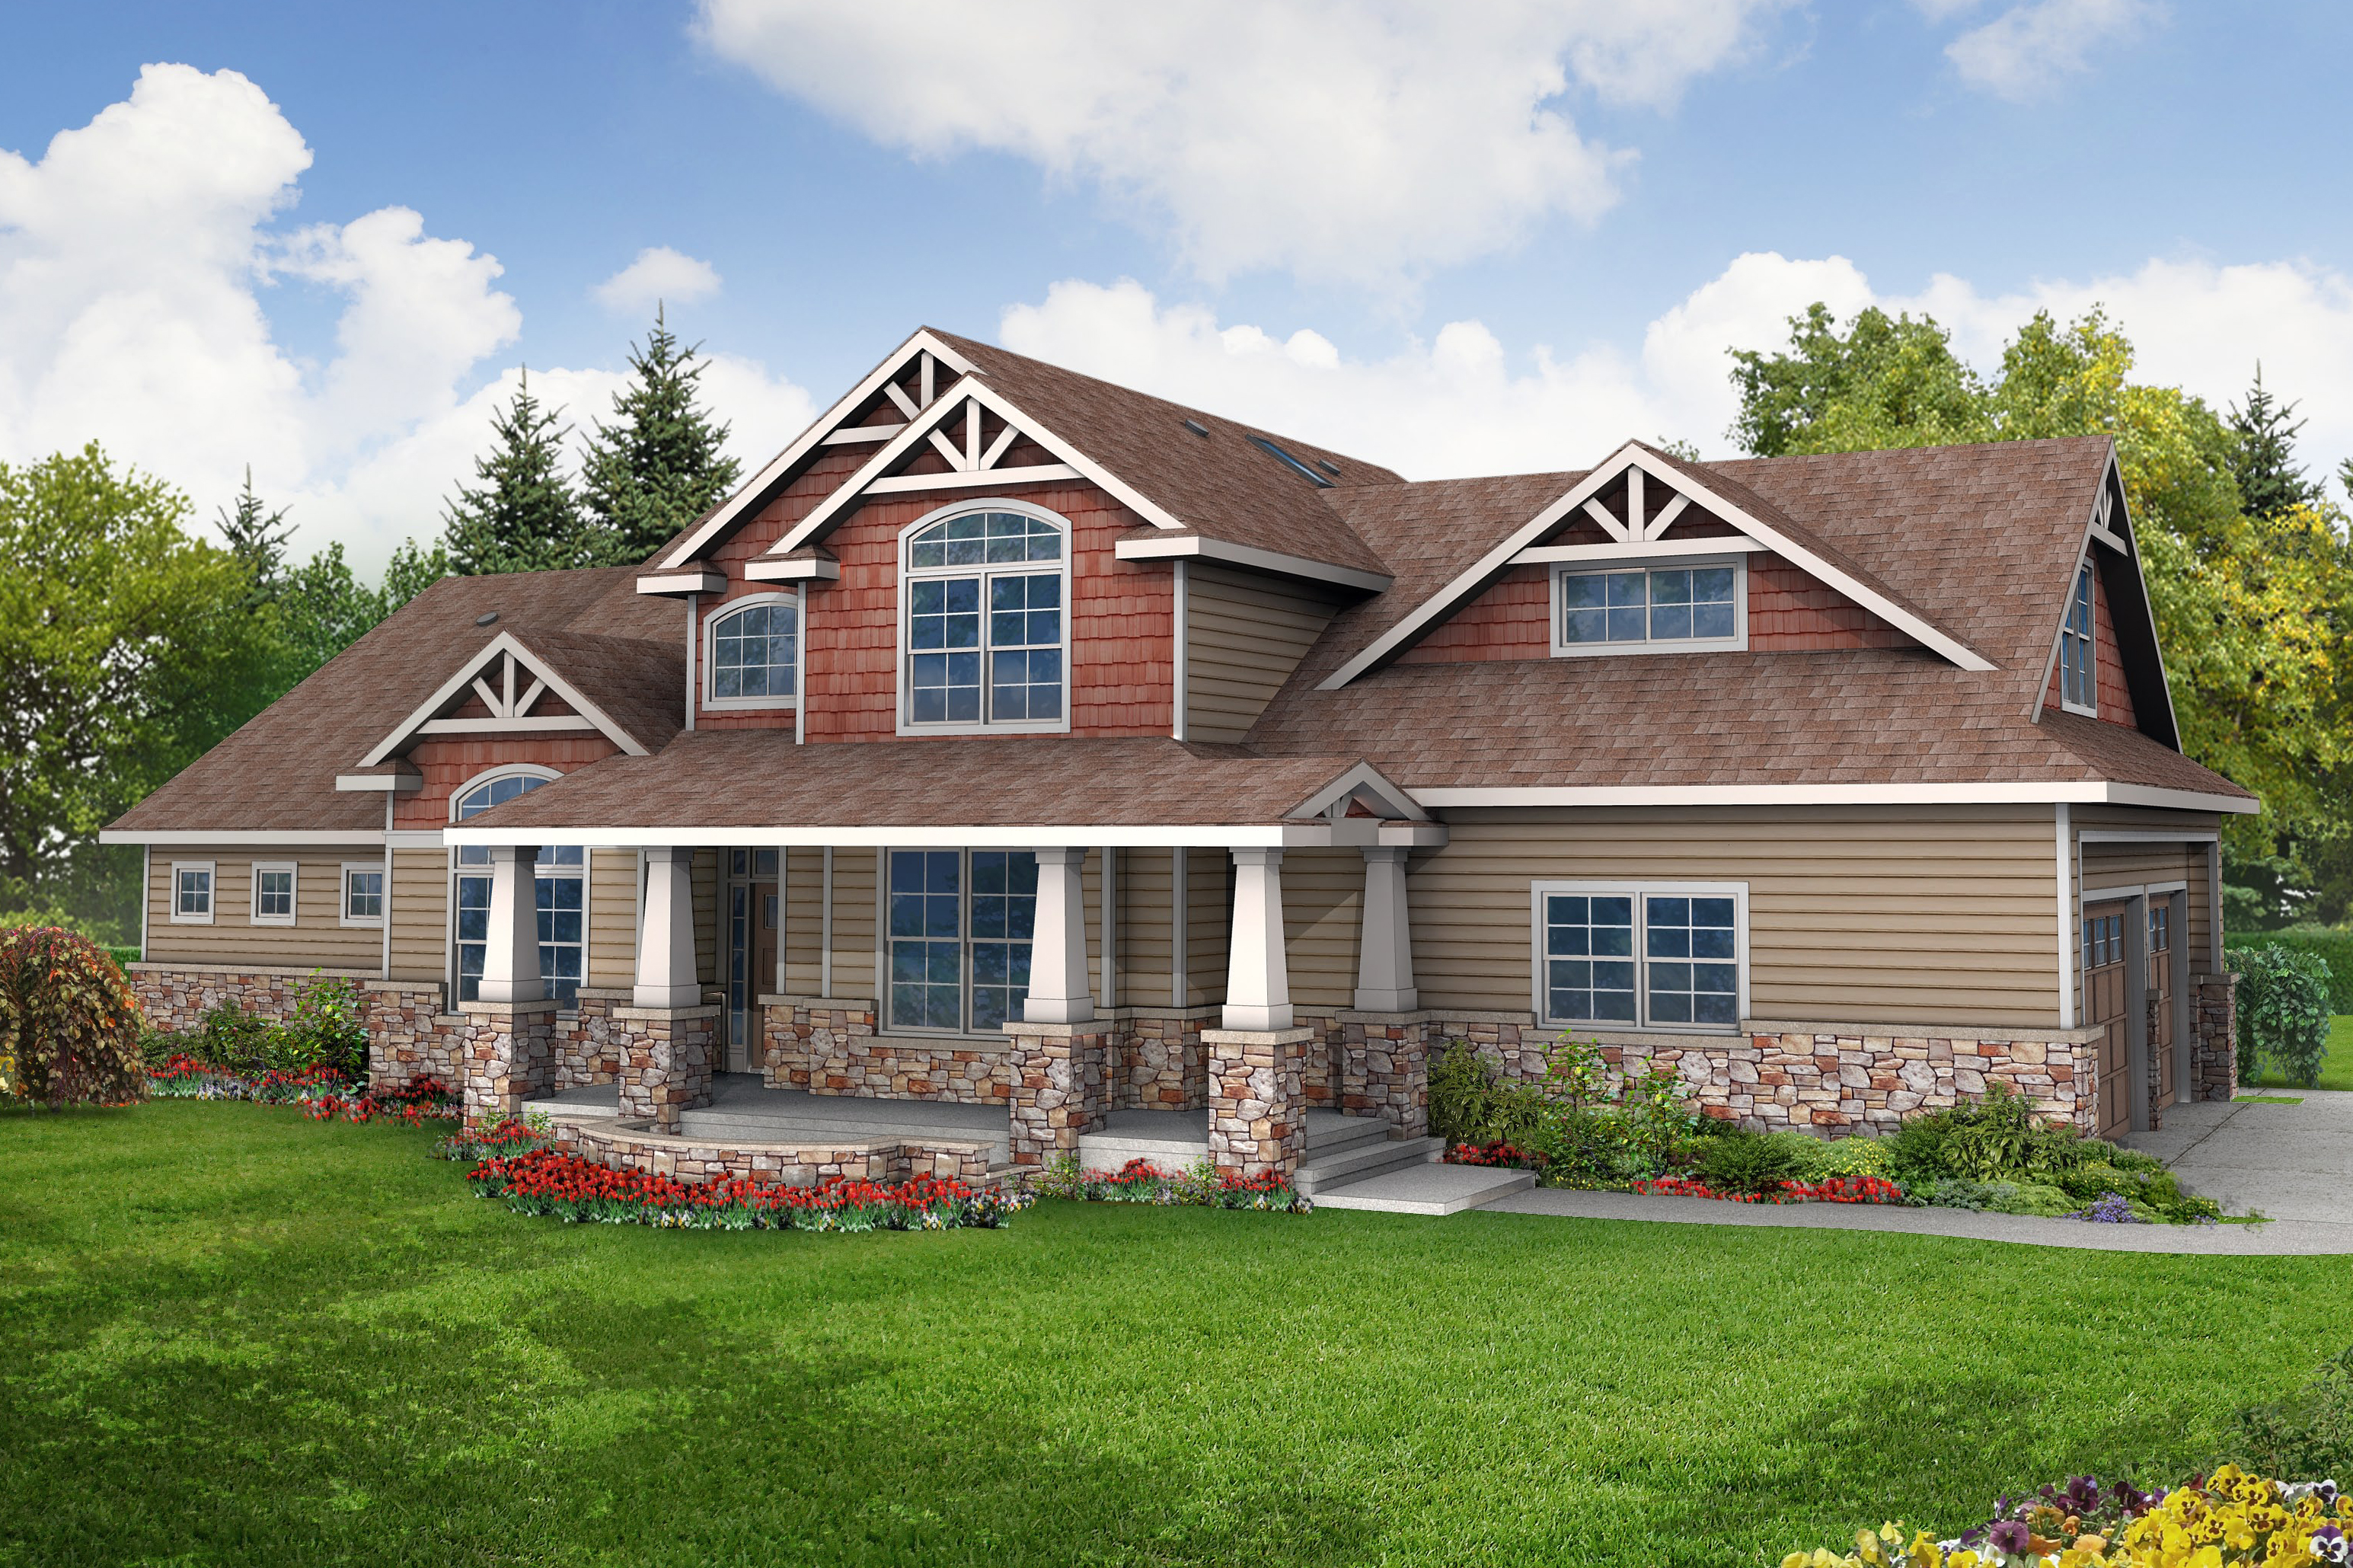 Craftsman house plans craftsman home plans craftsman for Homes plan